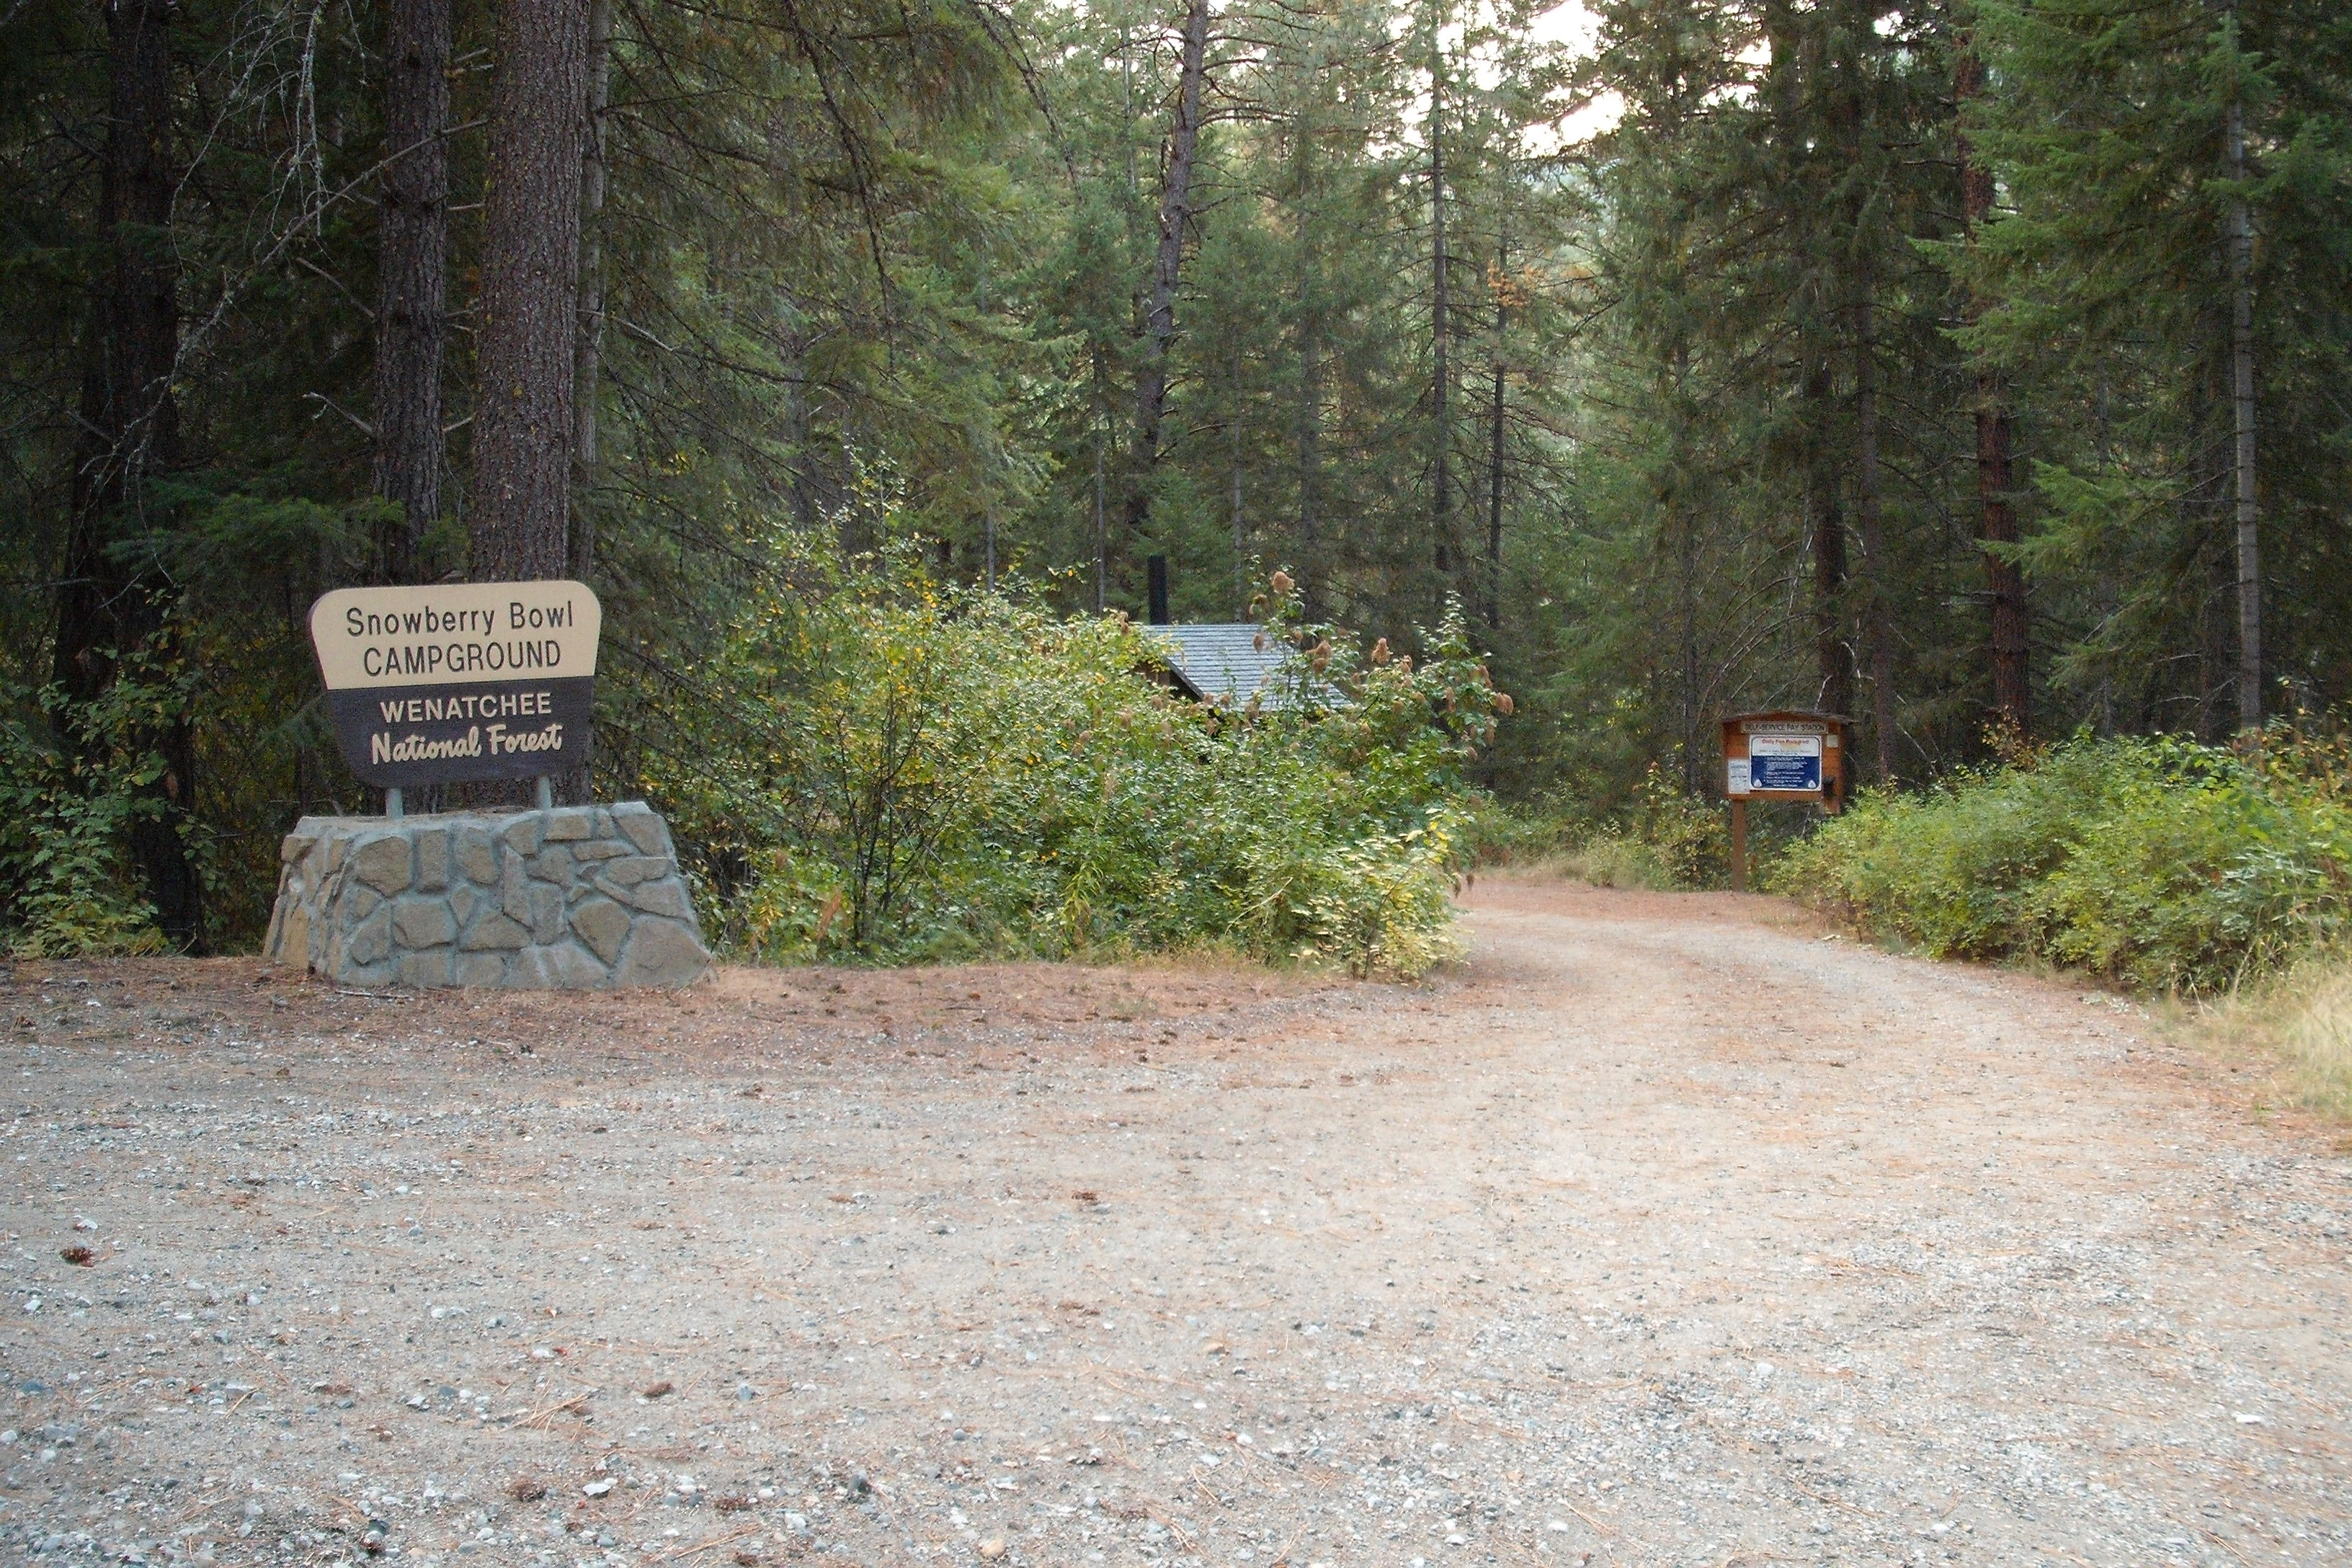 Snowberry Bowl Campground